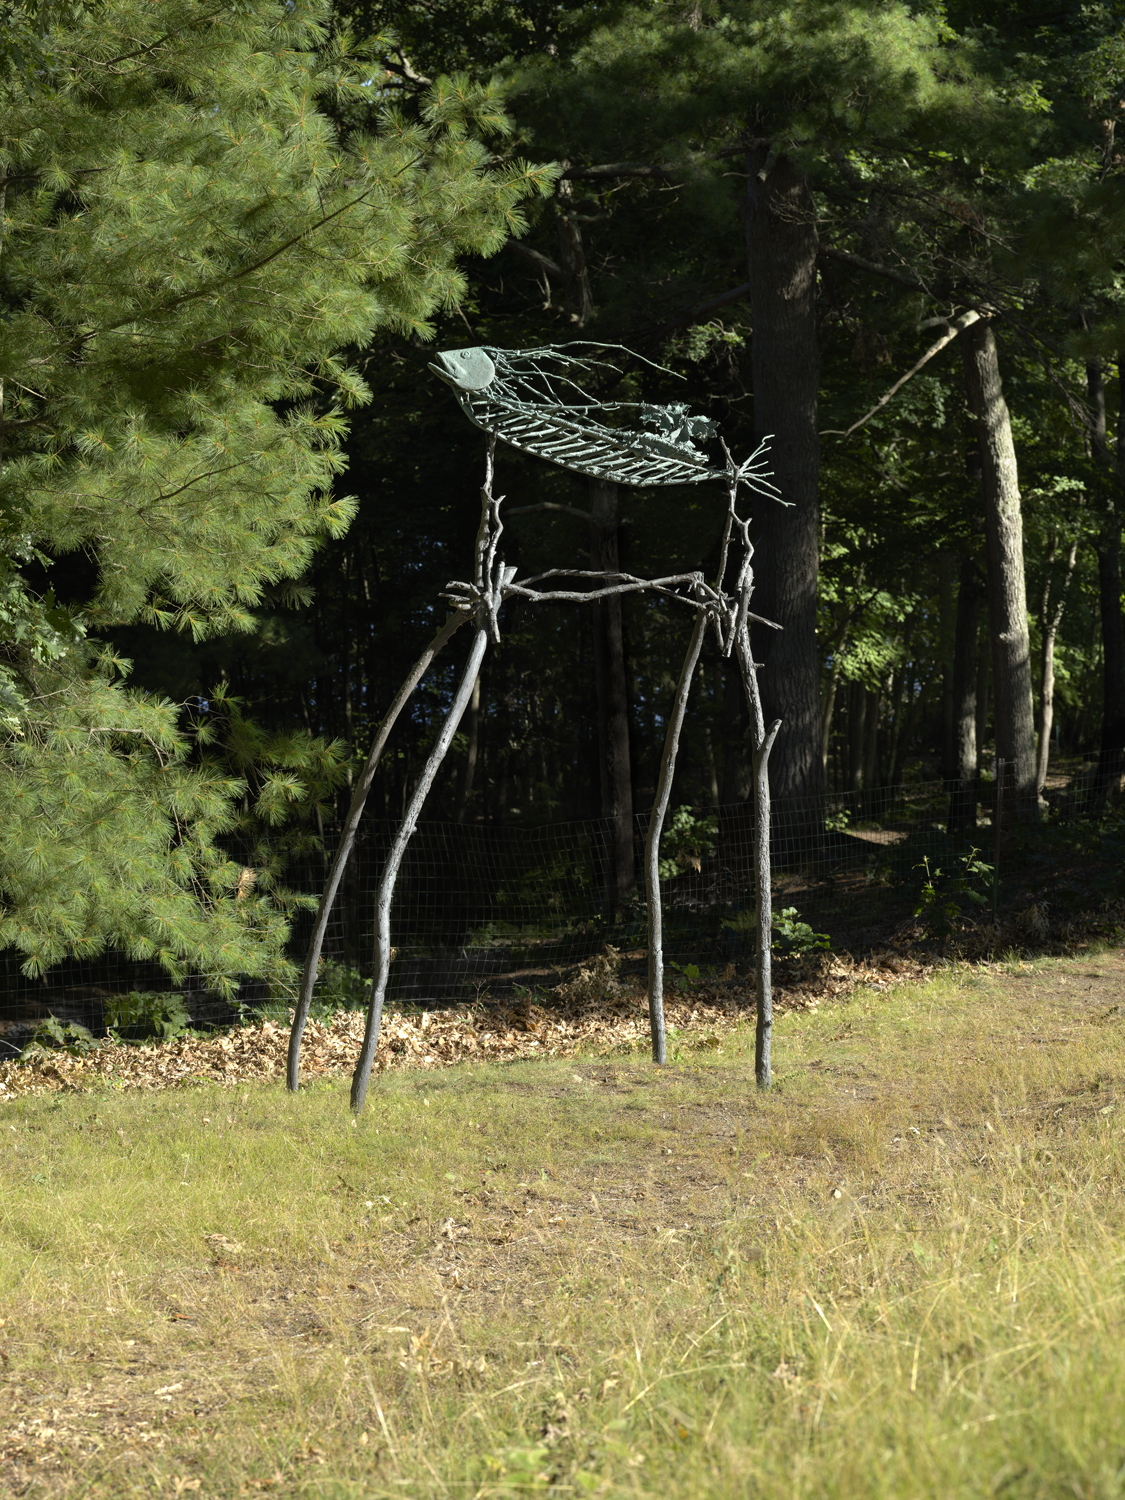 a bronze sculpture in a field